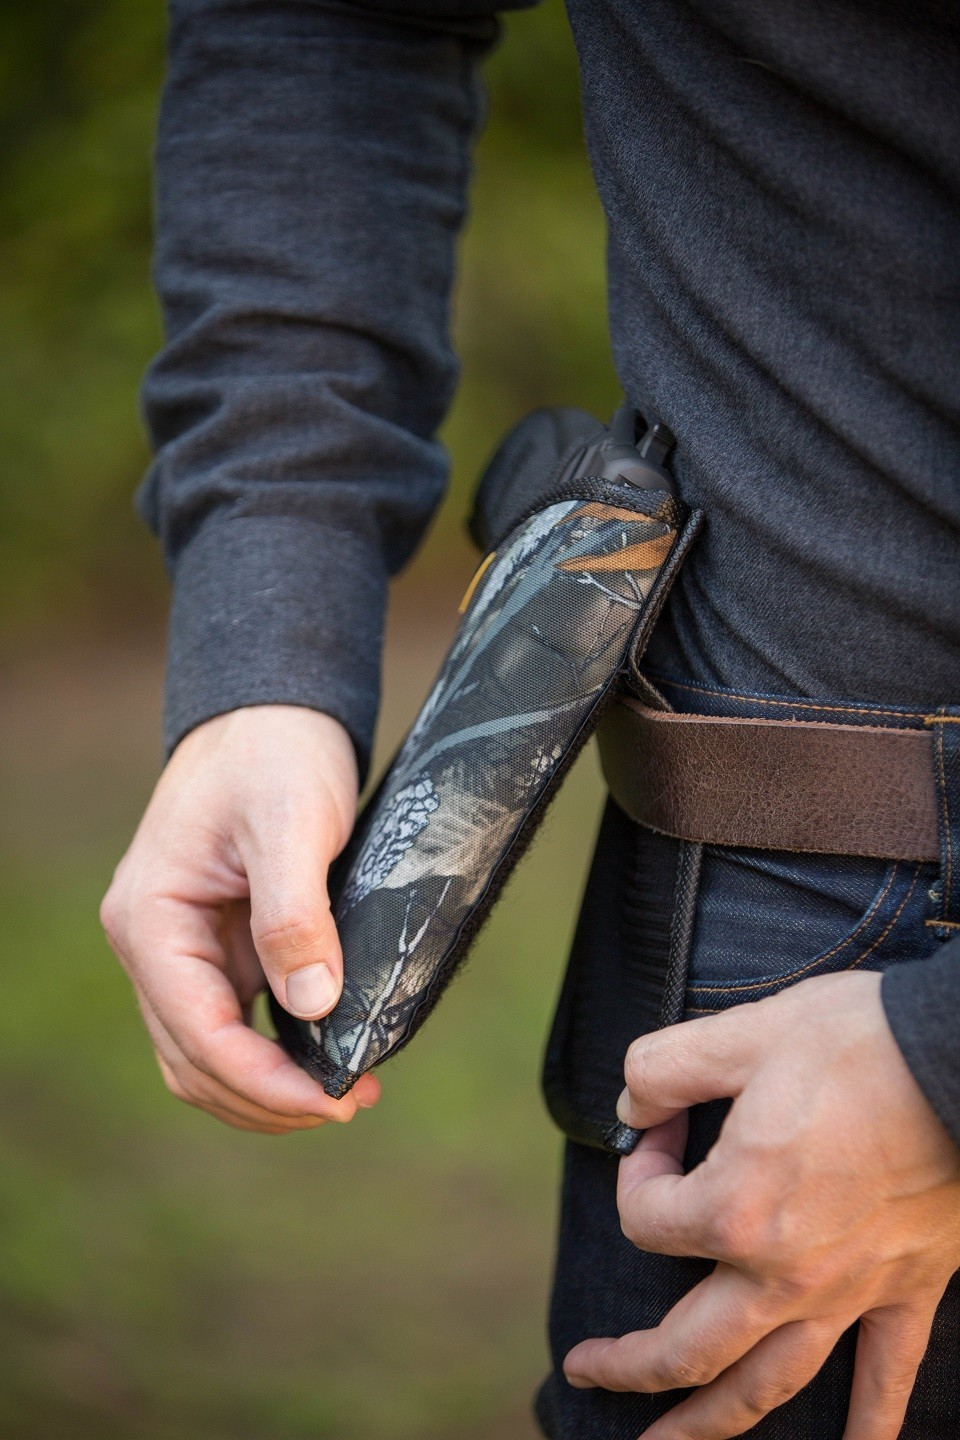 OUTSIDE THE WAISTBAND HOLSTERS